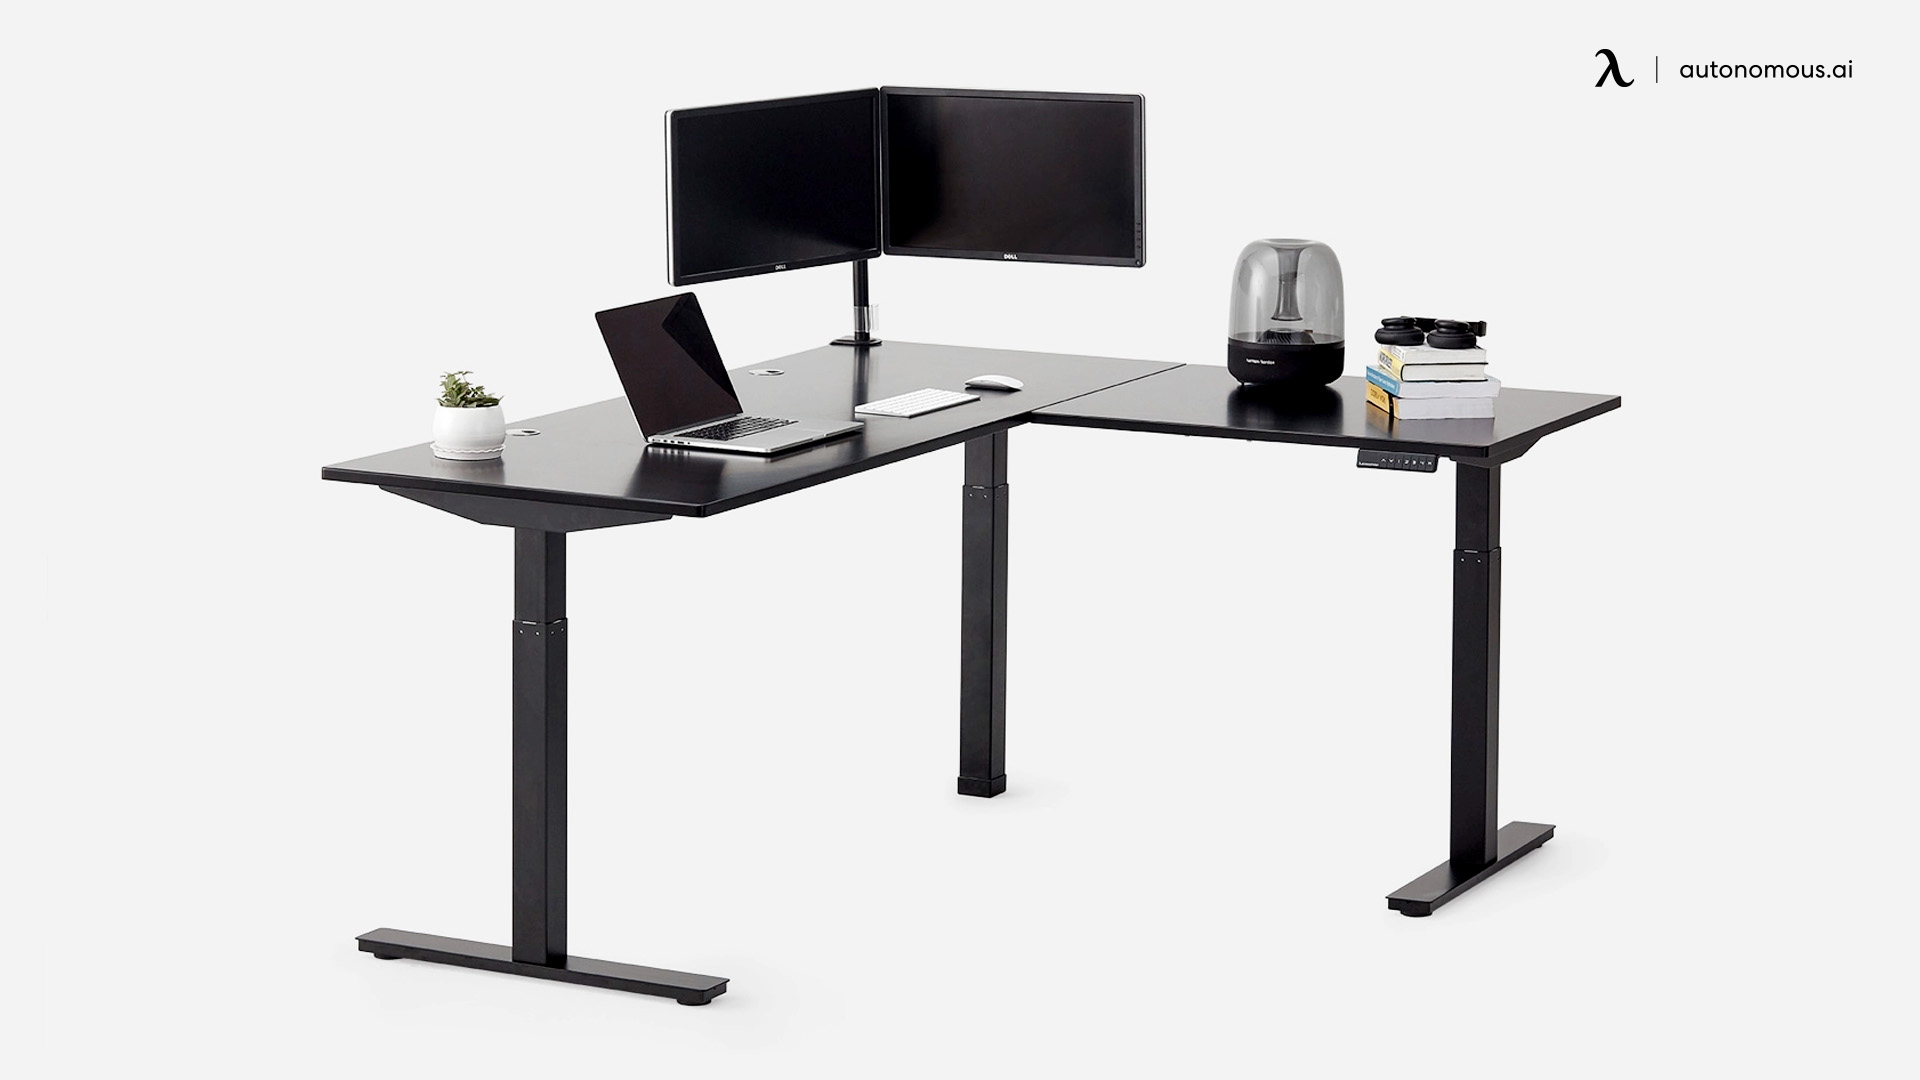 Why Purchase an L-Shaped Desk in 2021?